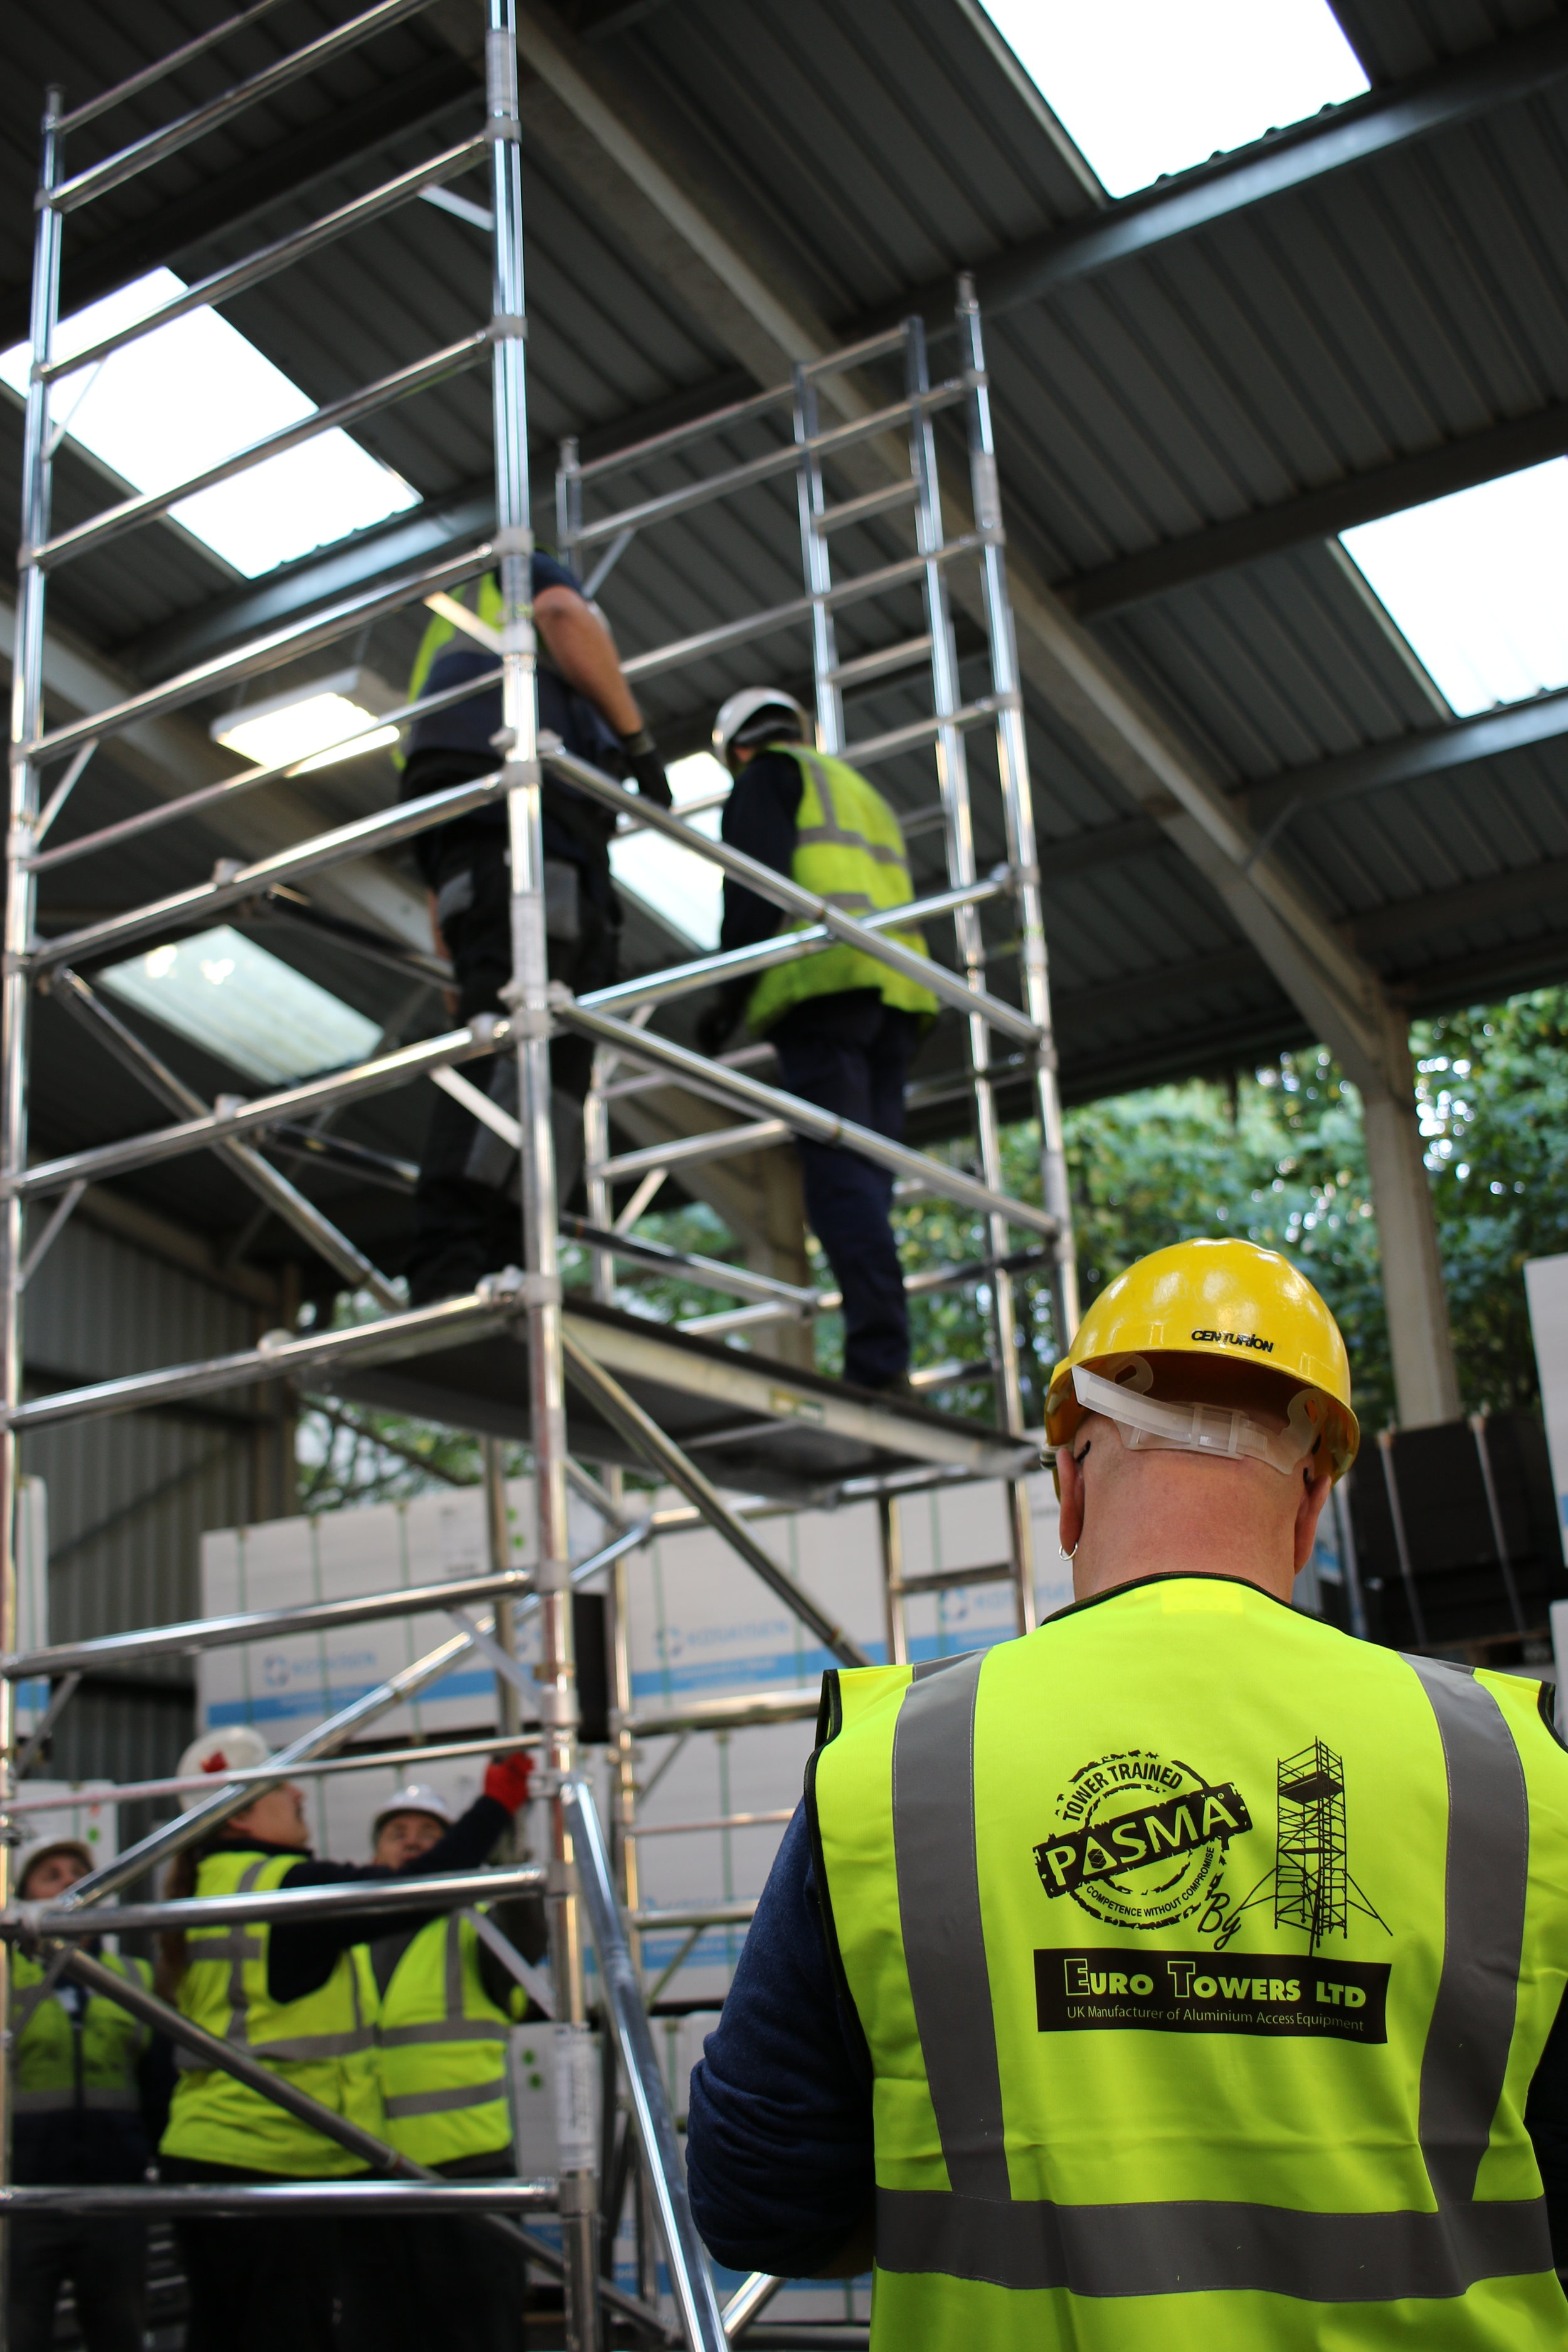 PASMA Training, euro towers Ltd, Towers for Users, working at height, safe access, training. Northamptonshire